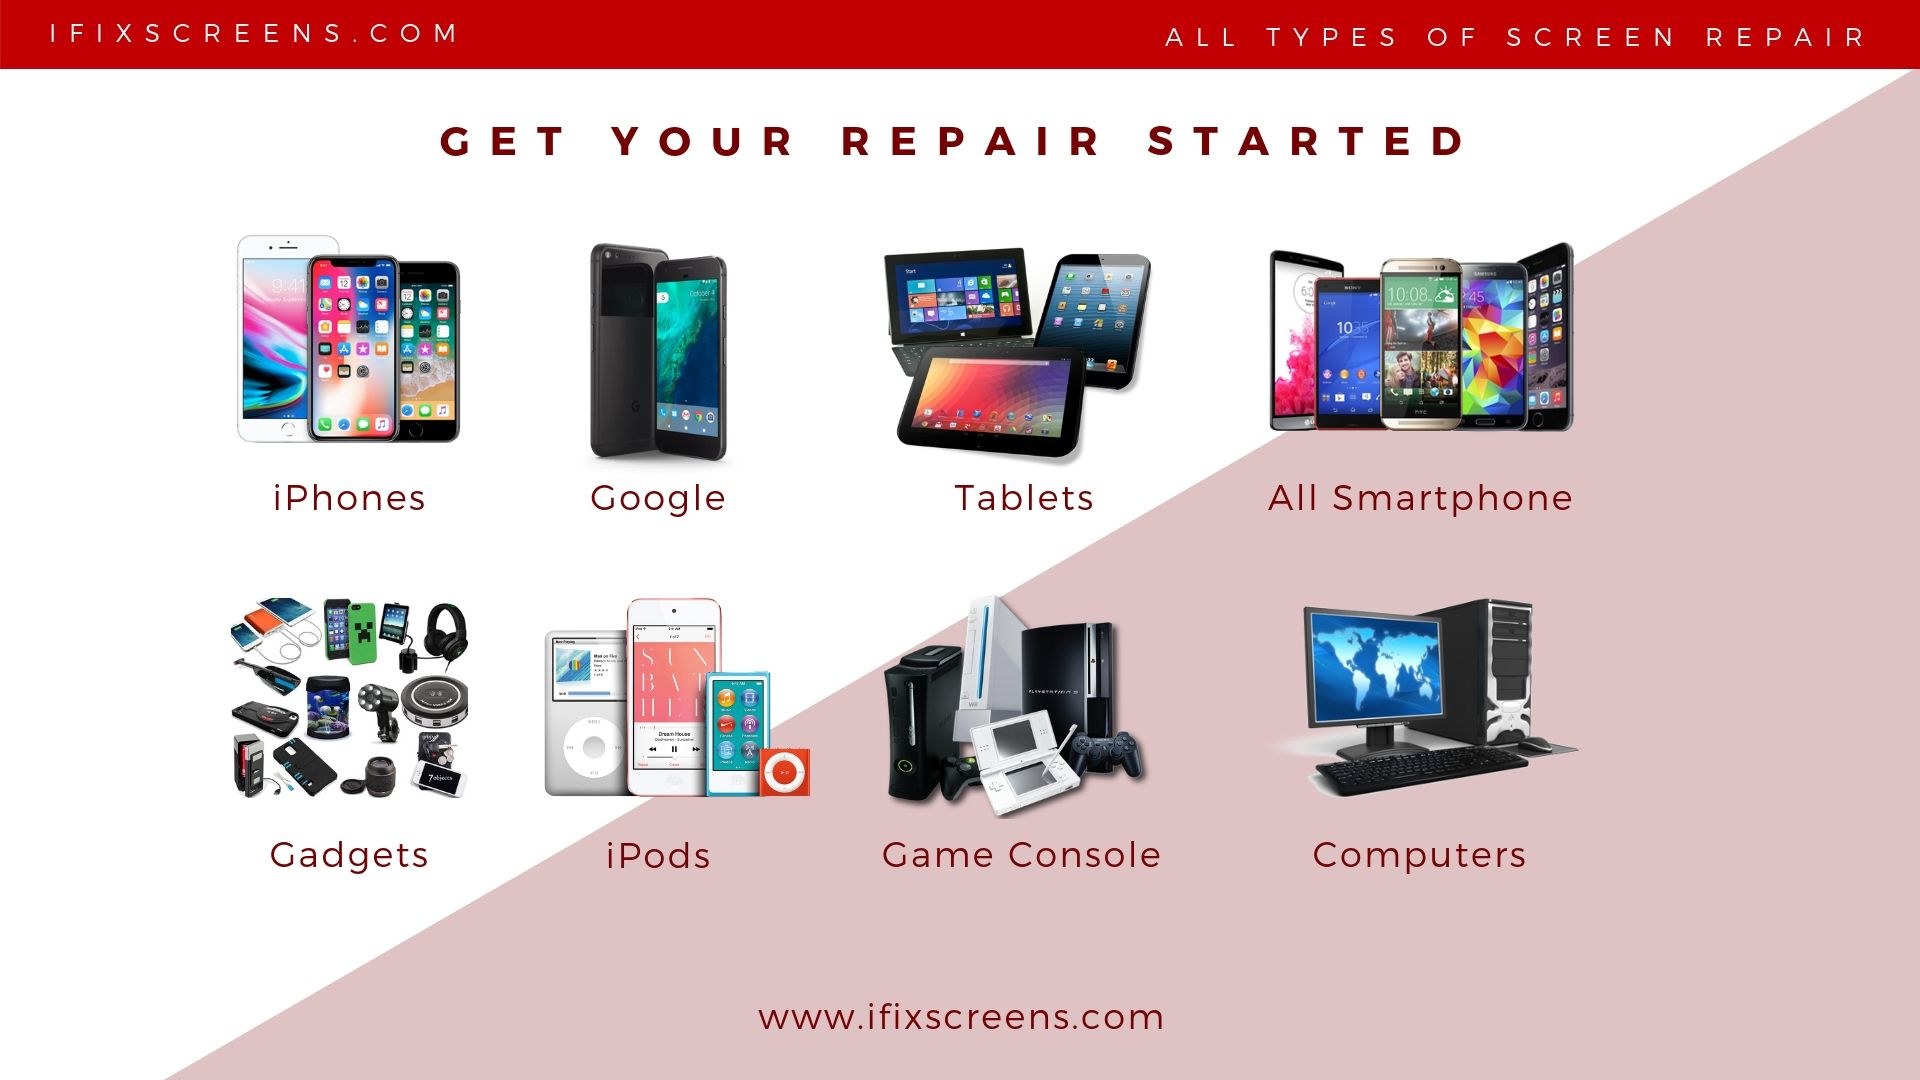 We Do Asap Repair For Your Devices And Gadgets Share Your Repair